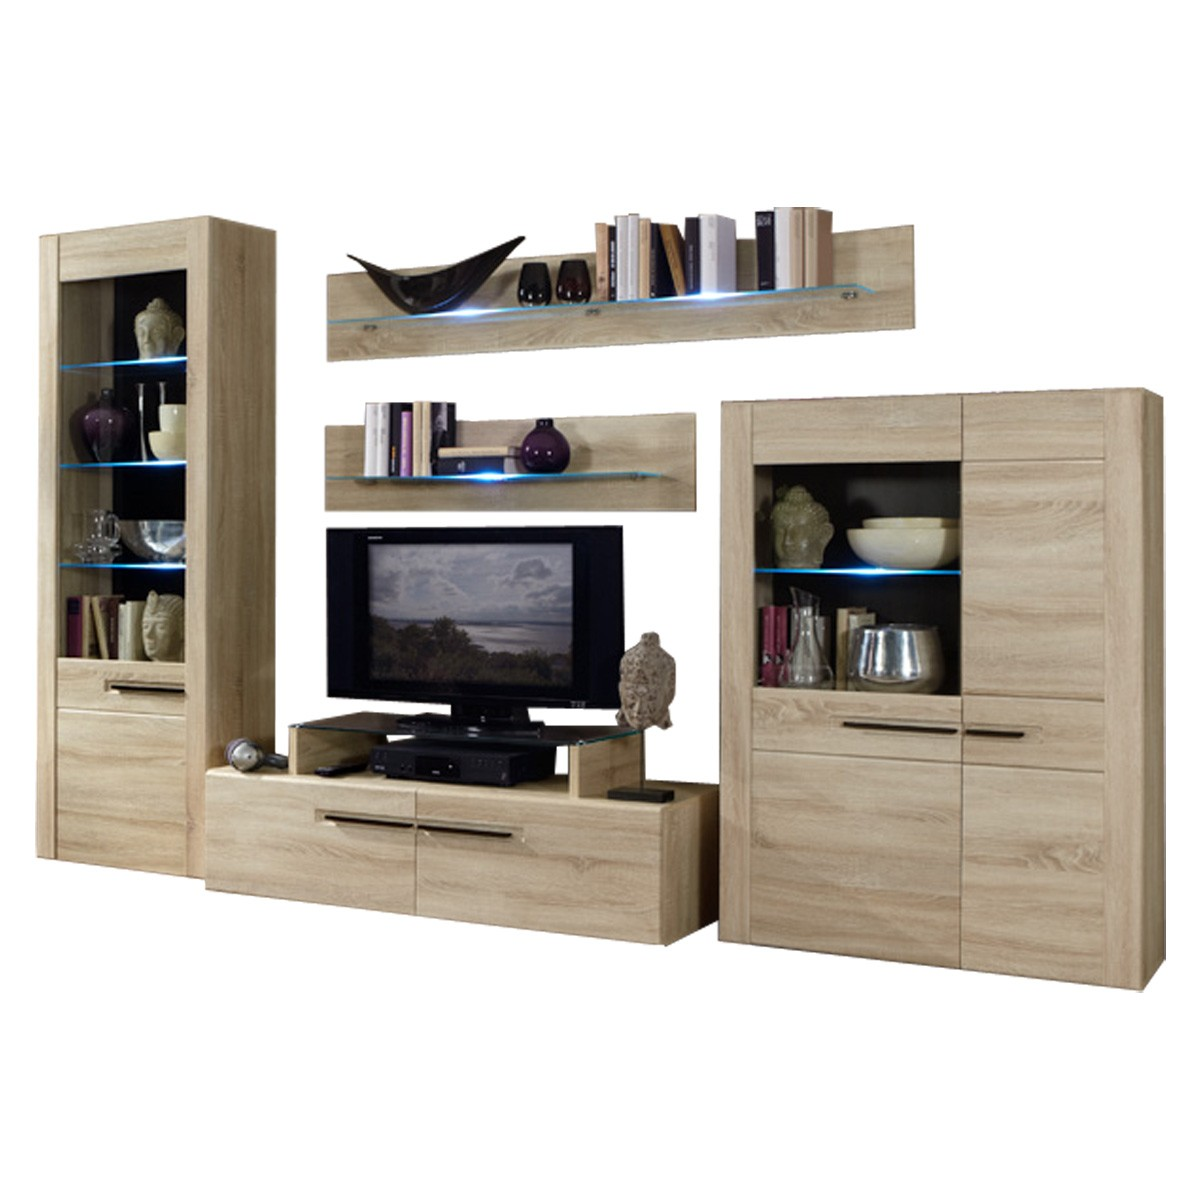 tv sideboard eiche s gerau inspirierendes design f r wohnm bel. Black Bedroom Furniture Sets. Home Design Ideas